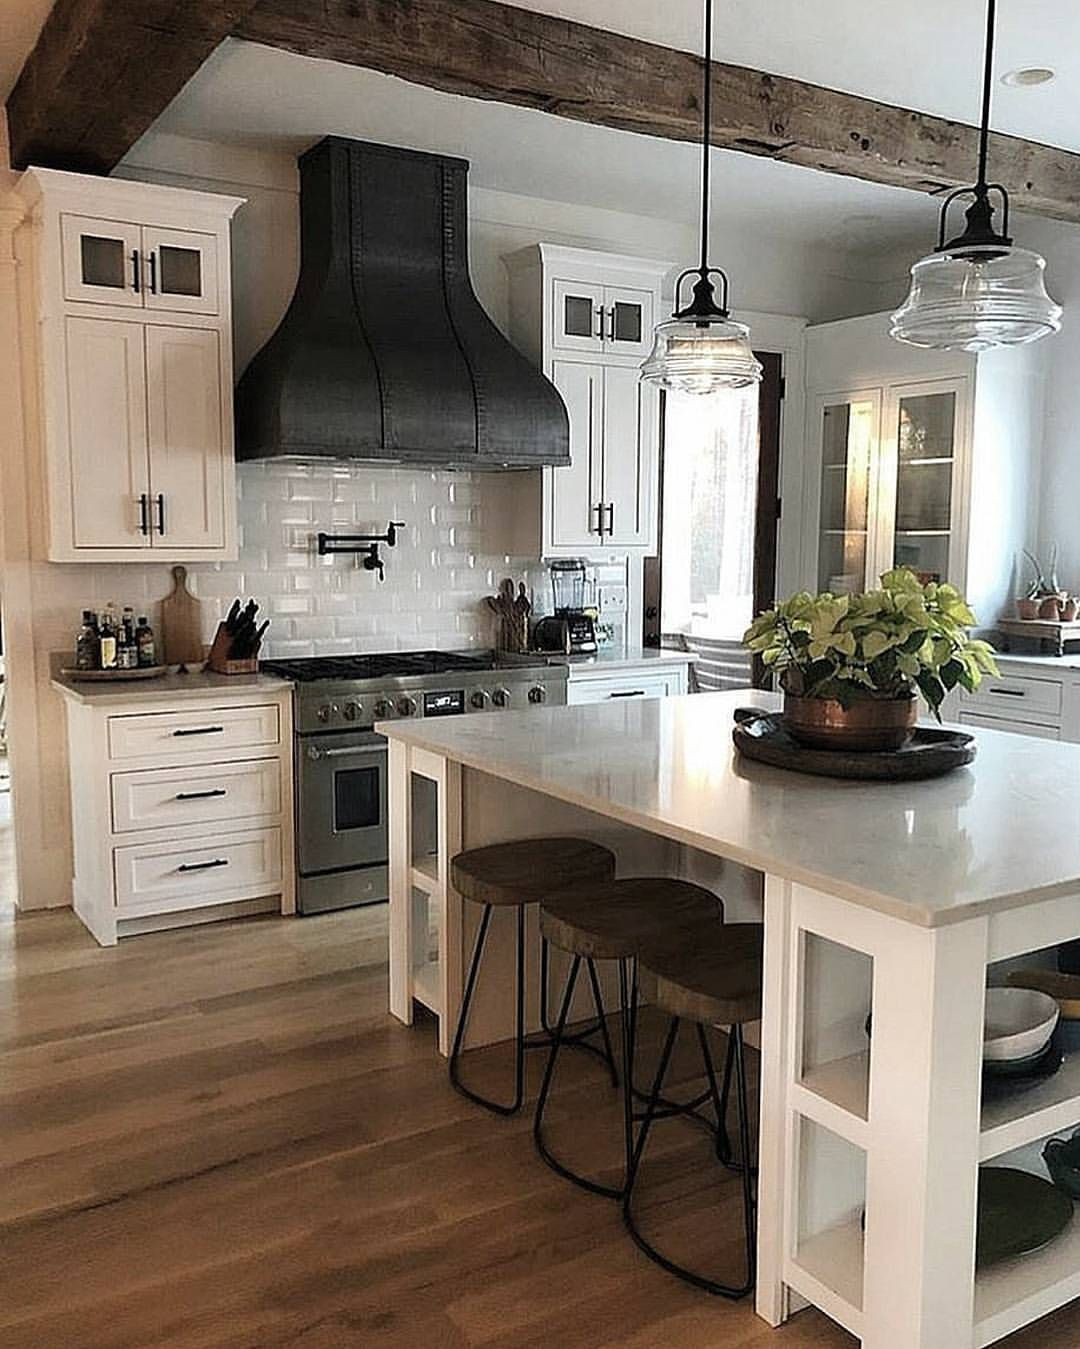 Modern Kitchen Design Ideas From Bangalore Homes  C2NyYXBlLTEtNWlCMVAz: Pin By Pina Di Carlo On Houses